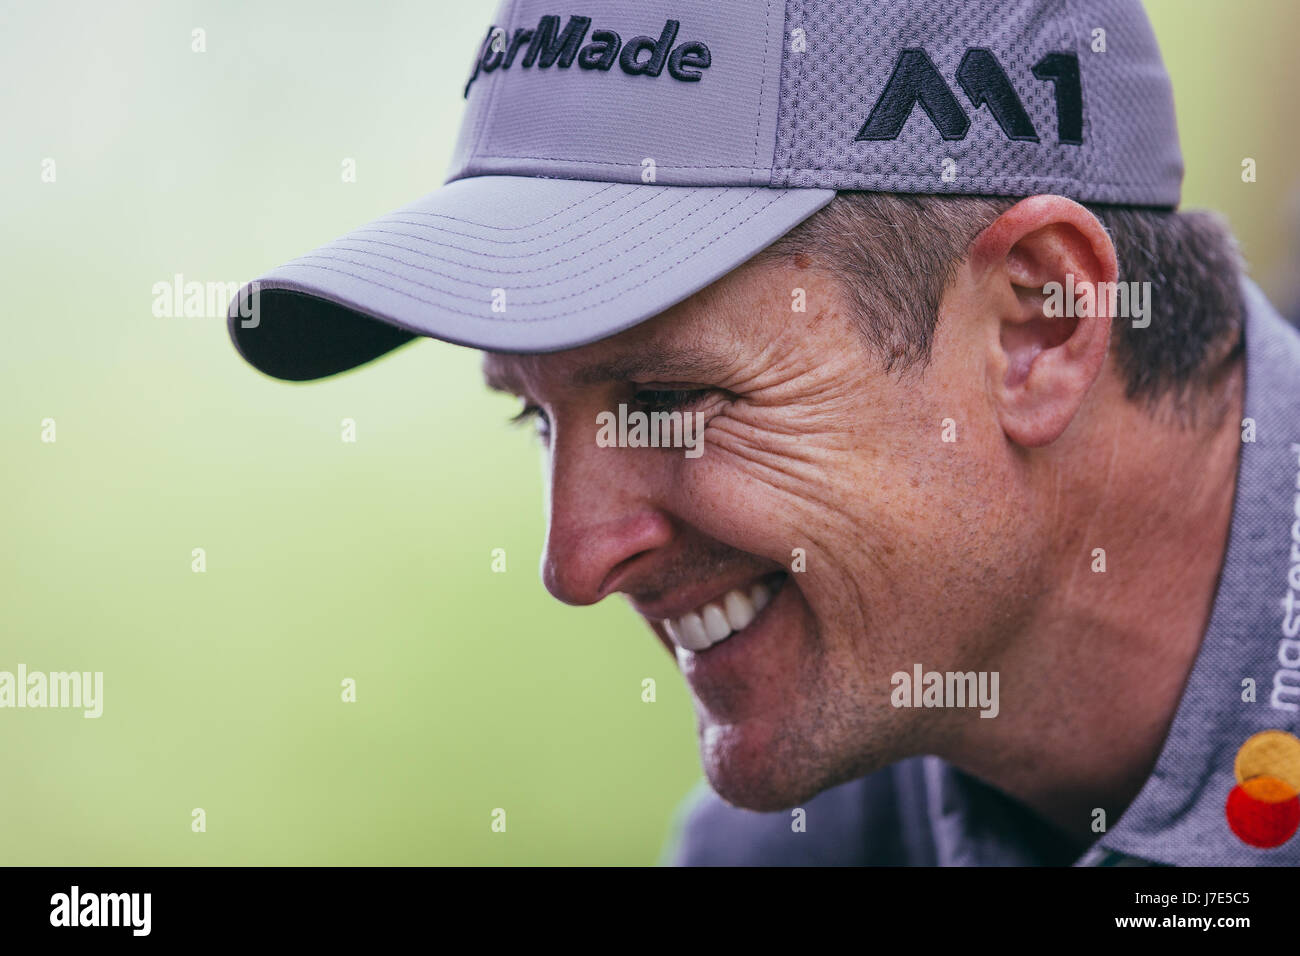 Justin Rose enjoys the Pro-Am competition ahead of the BMW PGA Championship at Wentworth on May, 24, 2017. - Stock Image